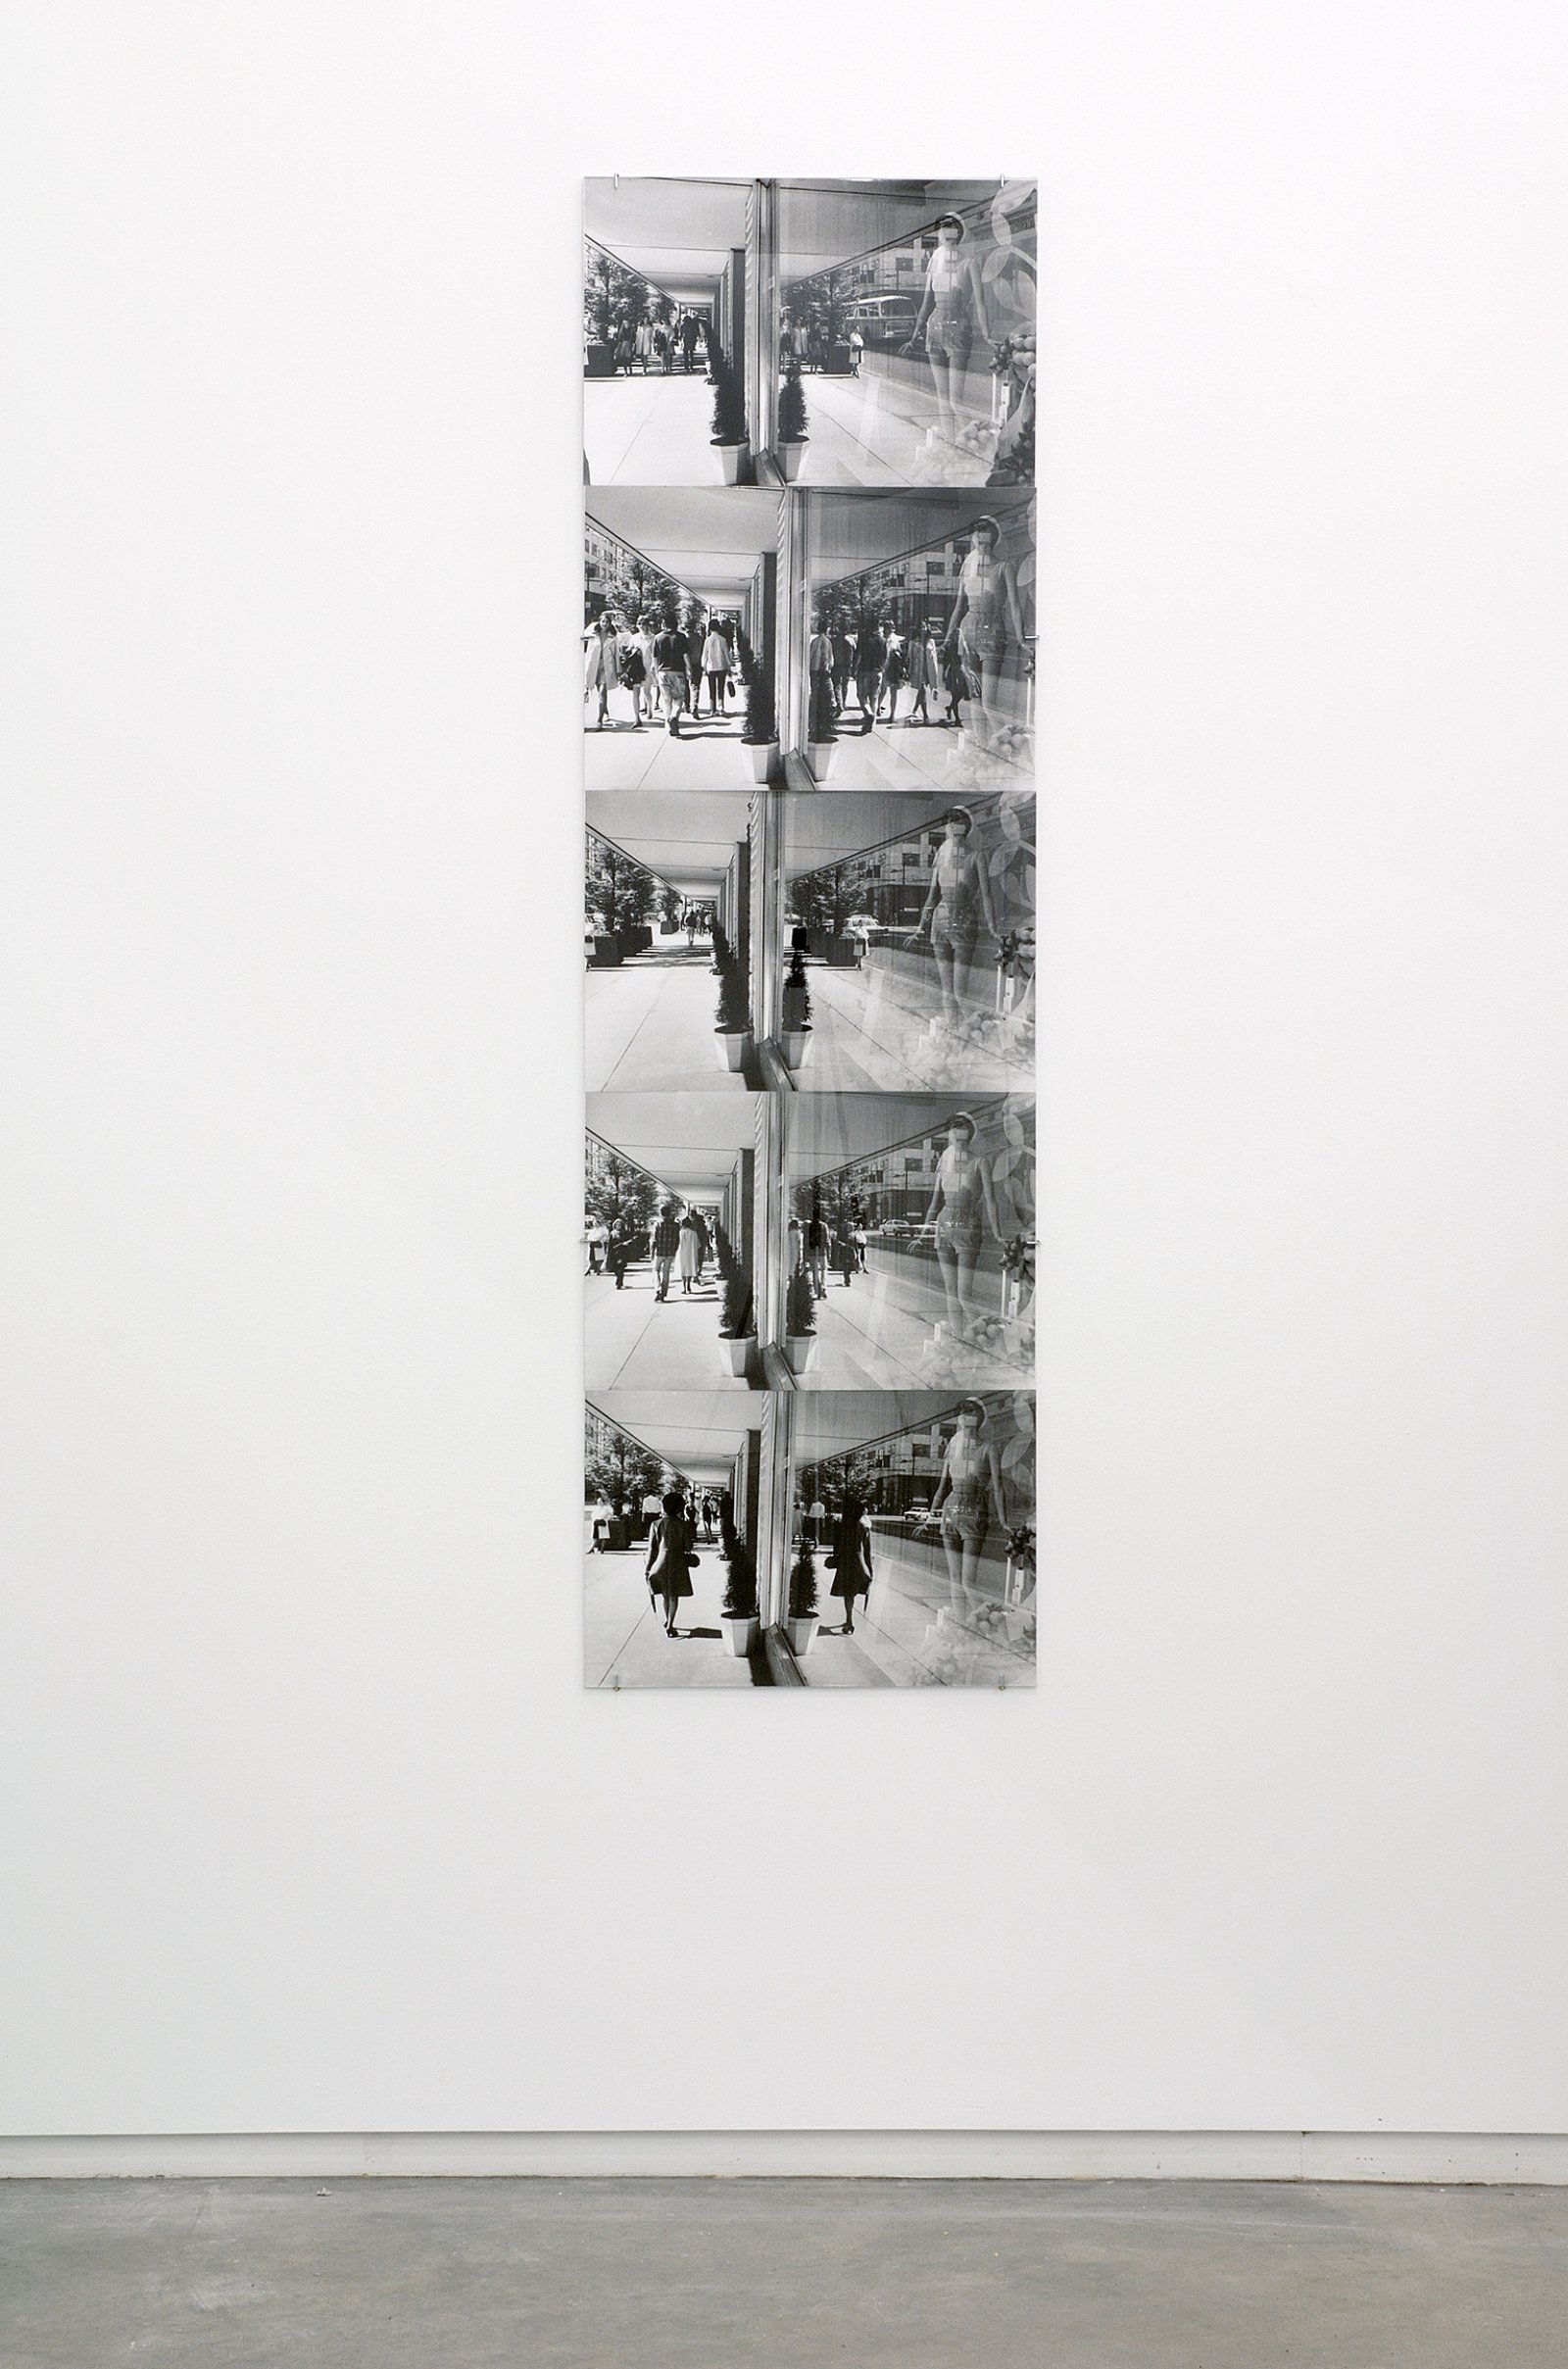 ​Ian Wallace, Street Reflections, 1970–2007, 5 black and white photographs with plexiglas, 66 x 20 in. (168 x 51 cm) by Ian Wallace